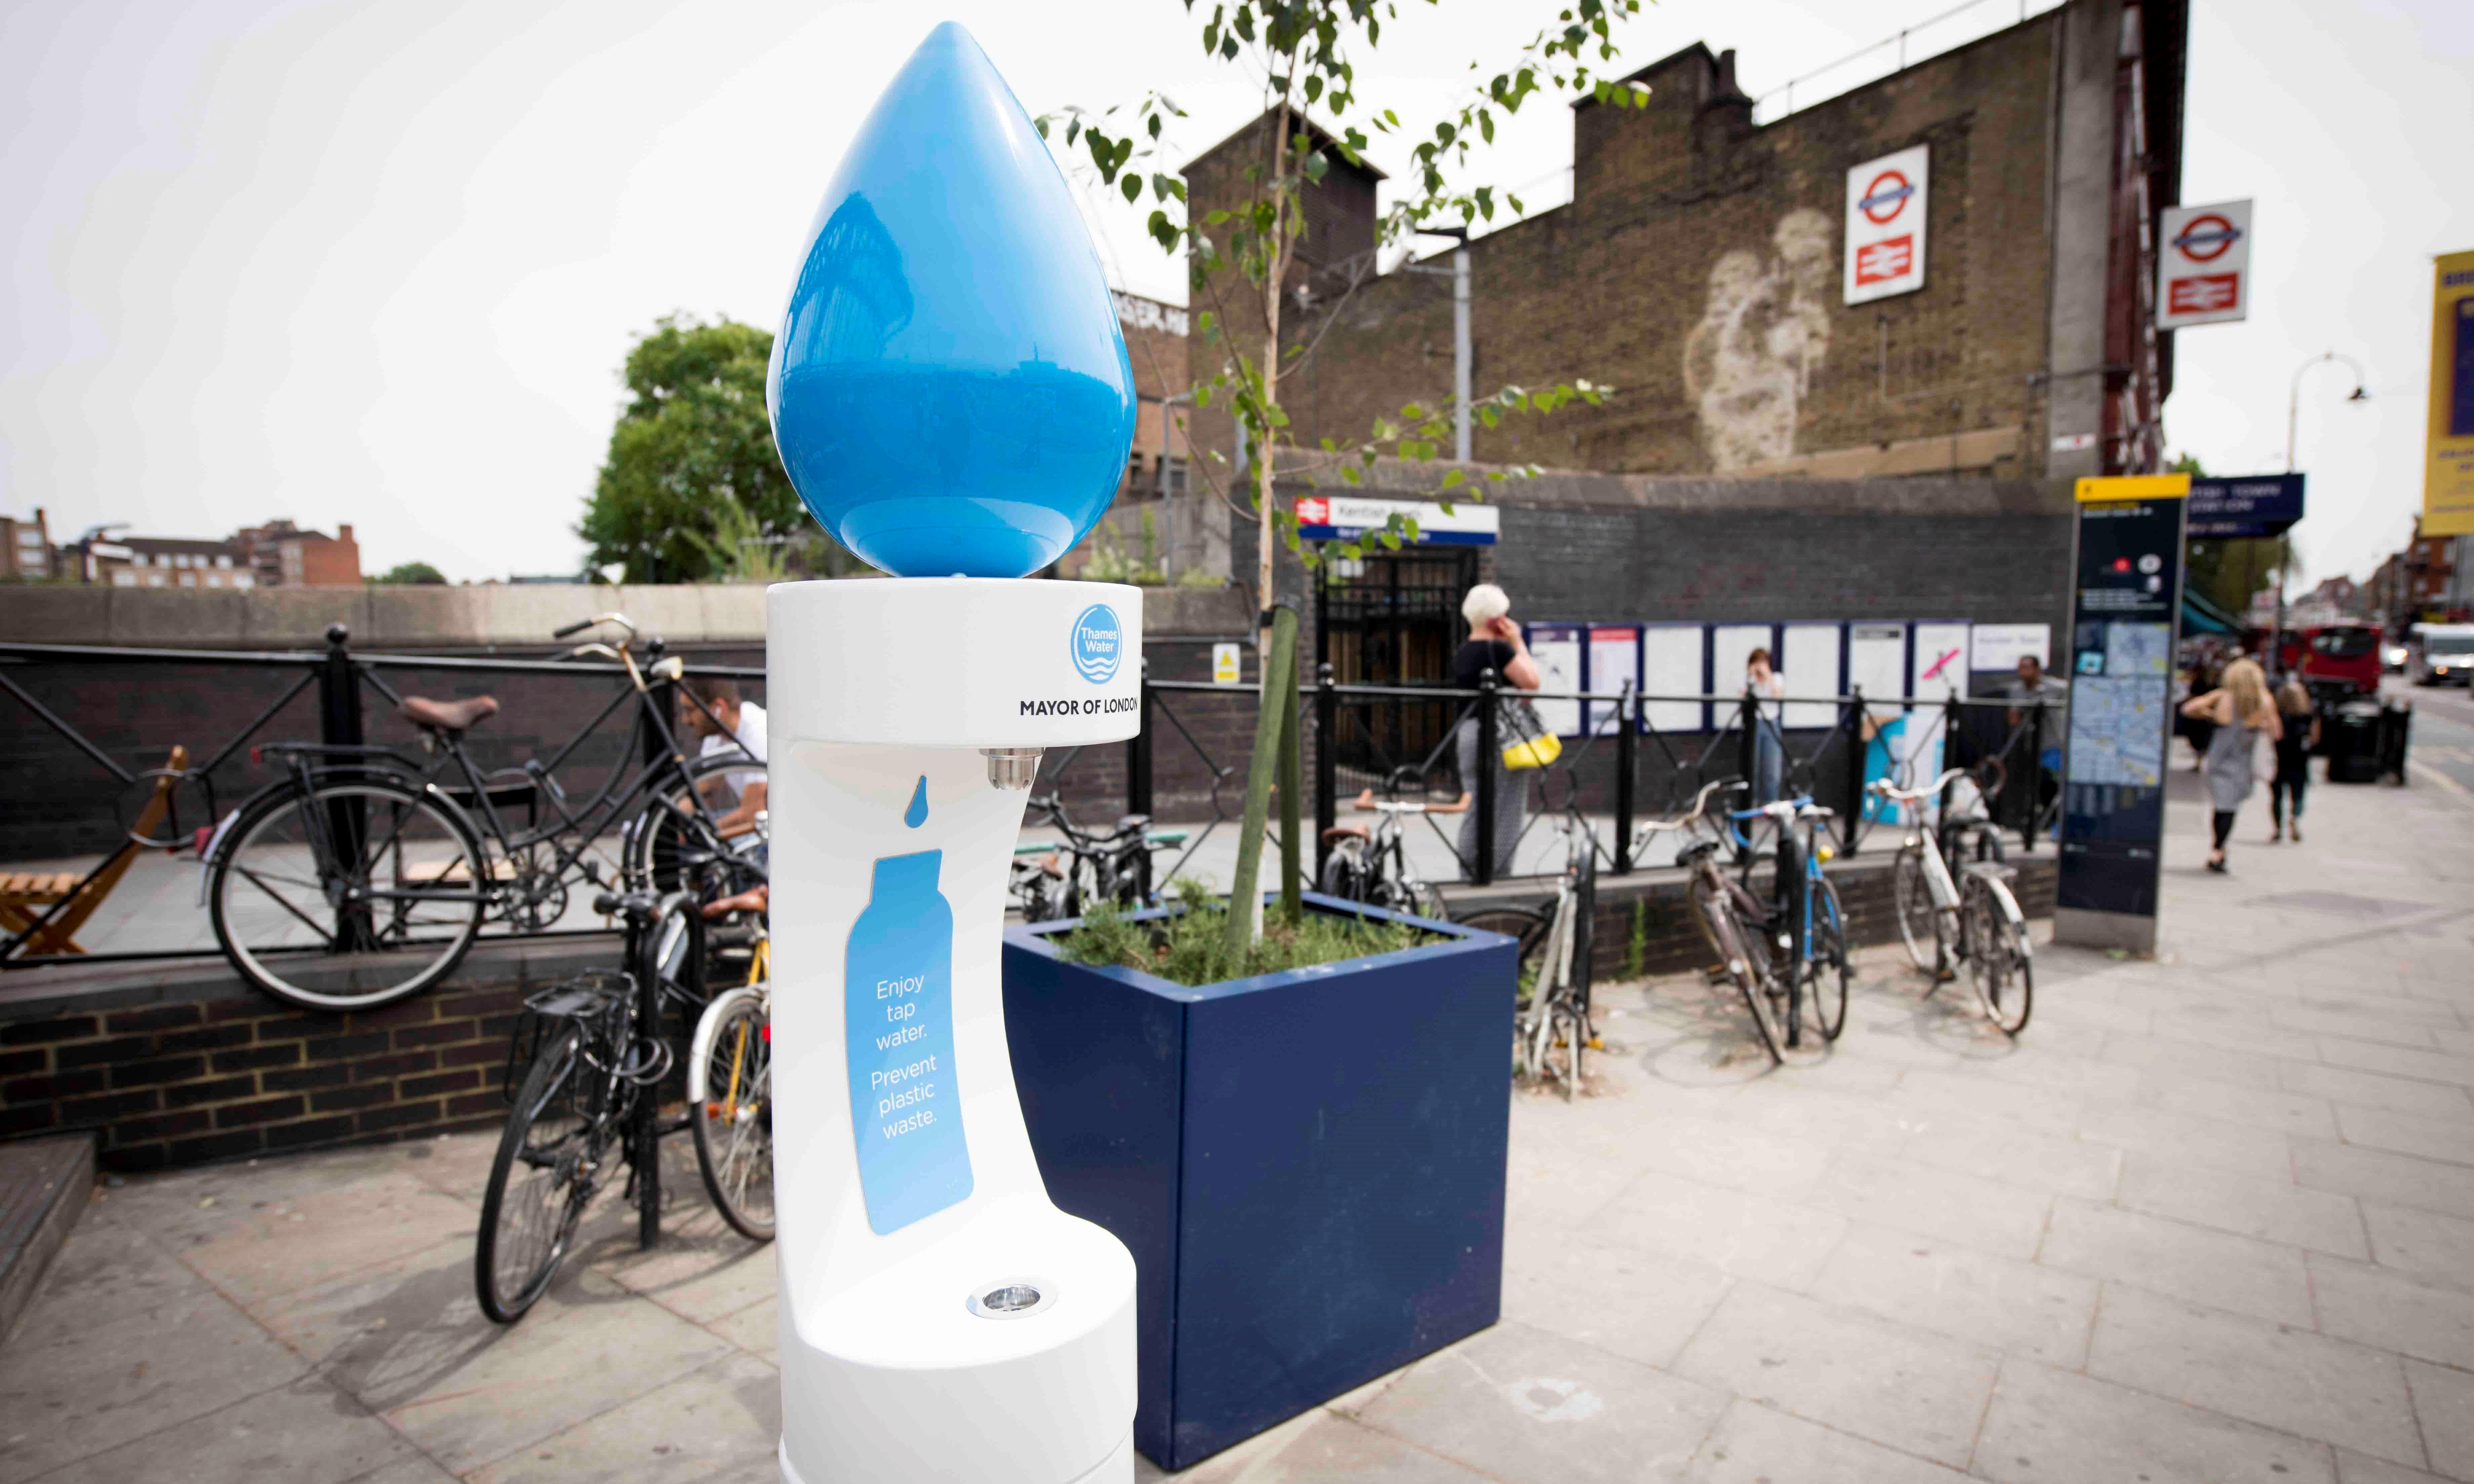 Locations of 50 new London water fountains revealed